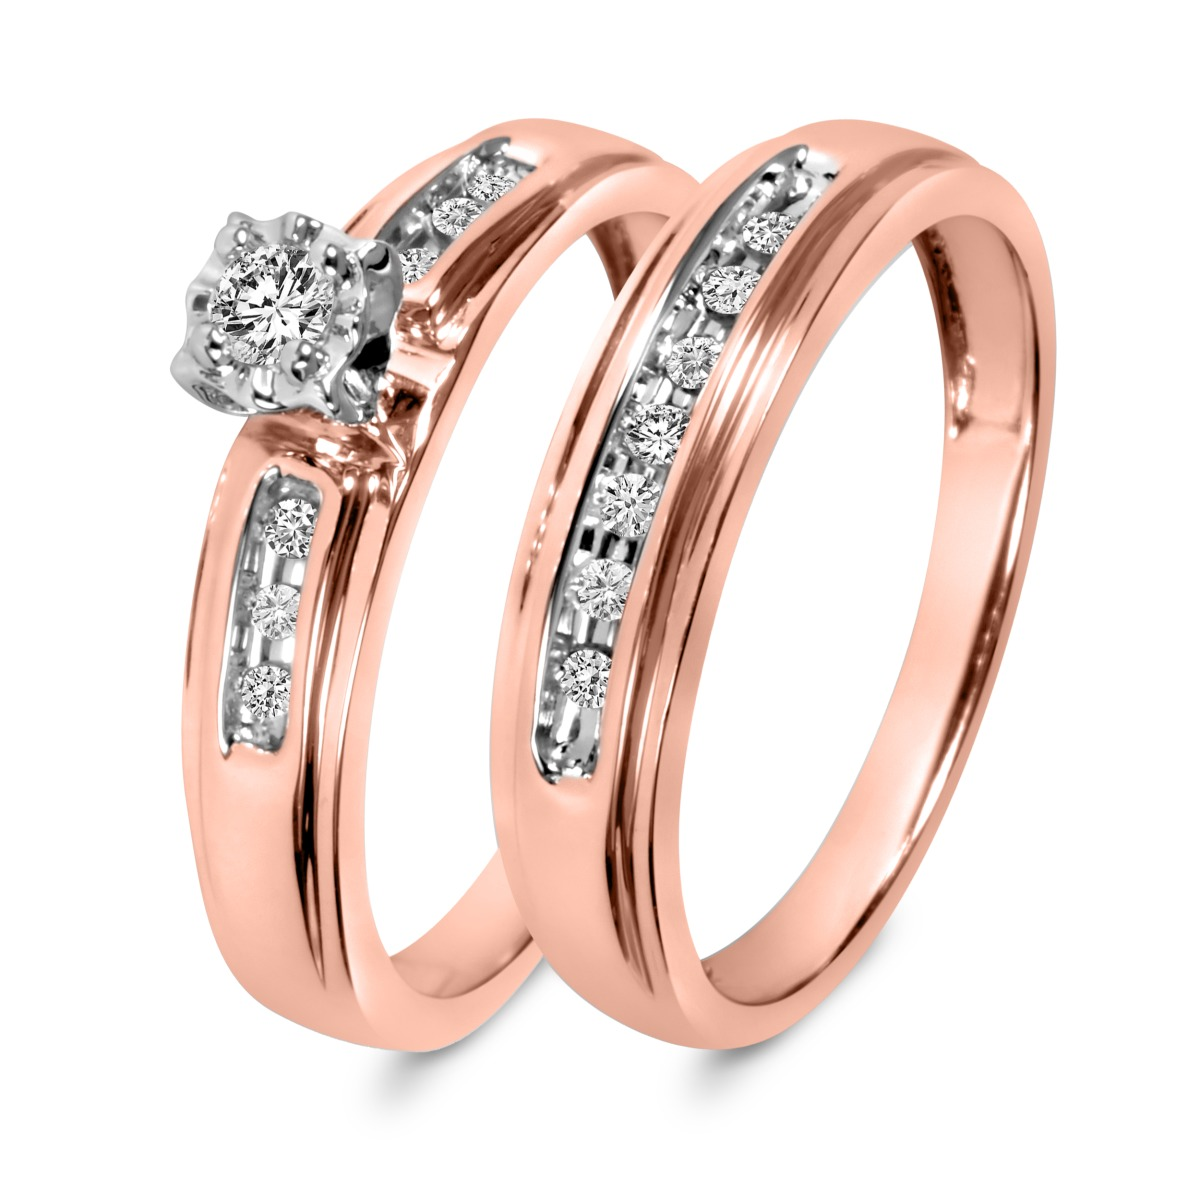 1/5 CT. T.W. Diamond Ladies' Bridal Wedding Ring Set 10K Rose Gold